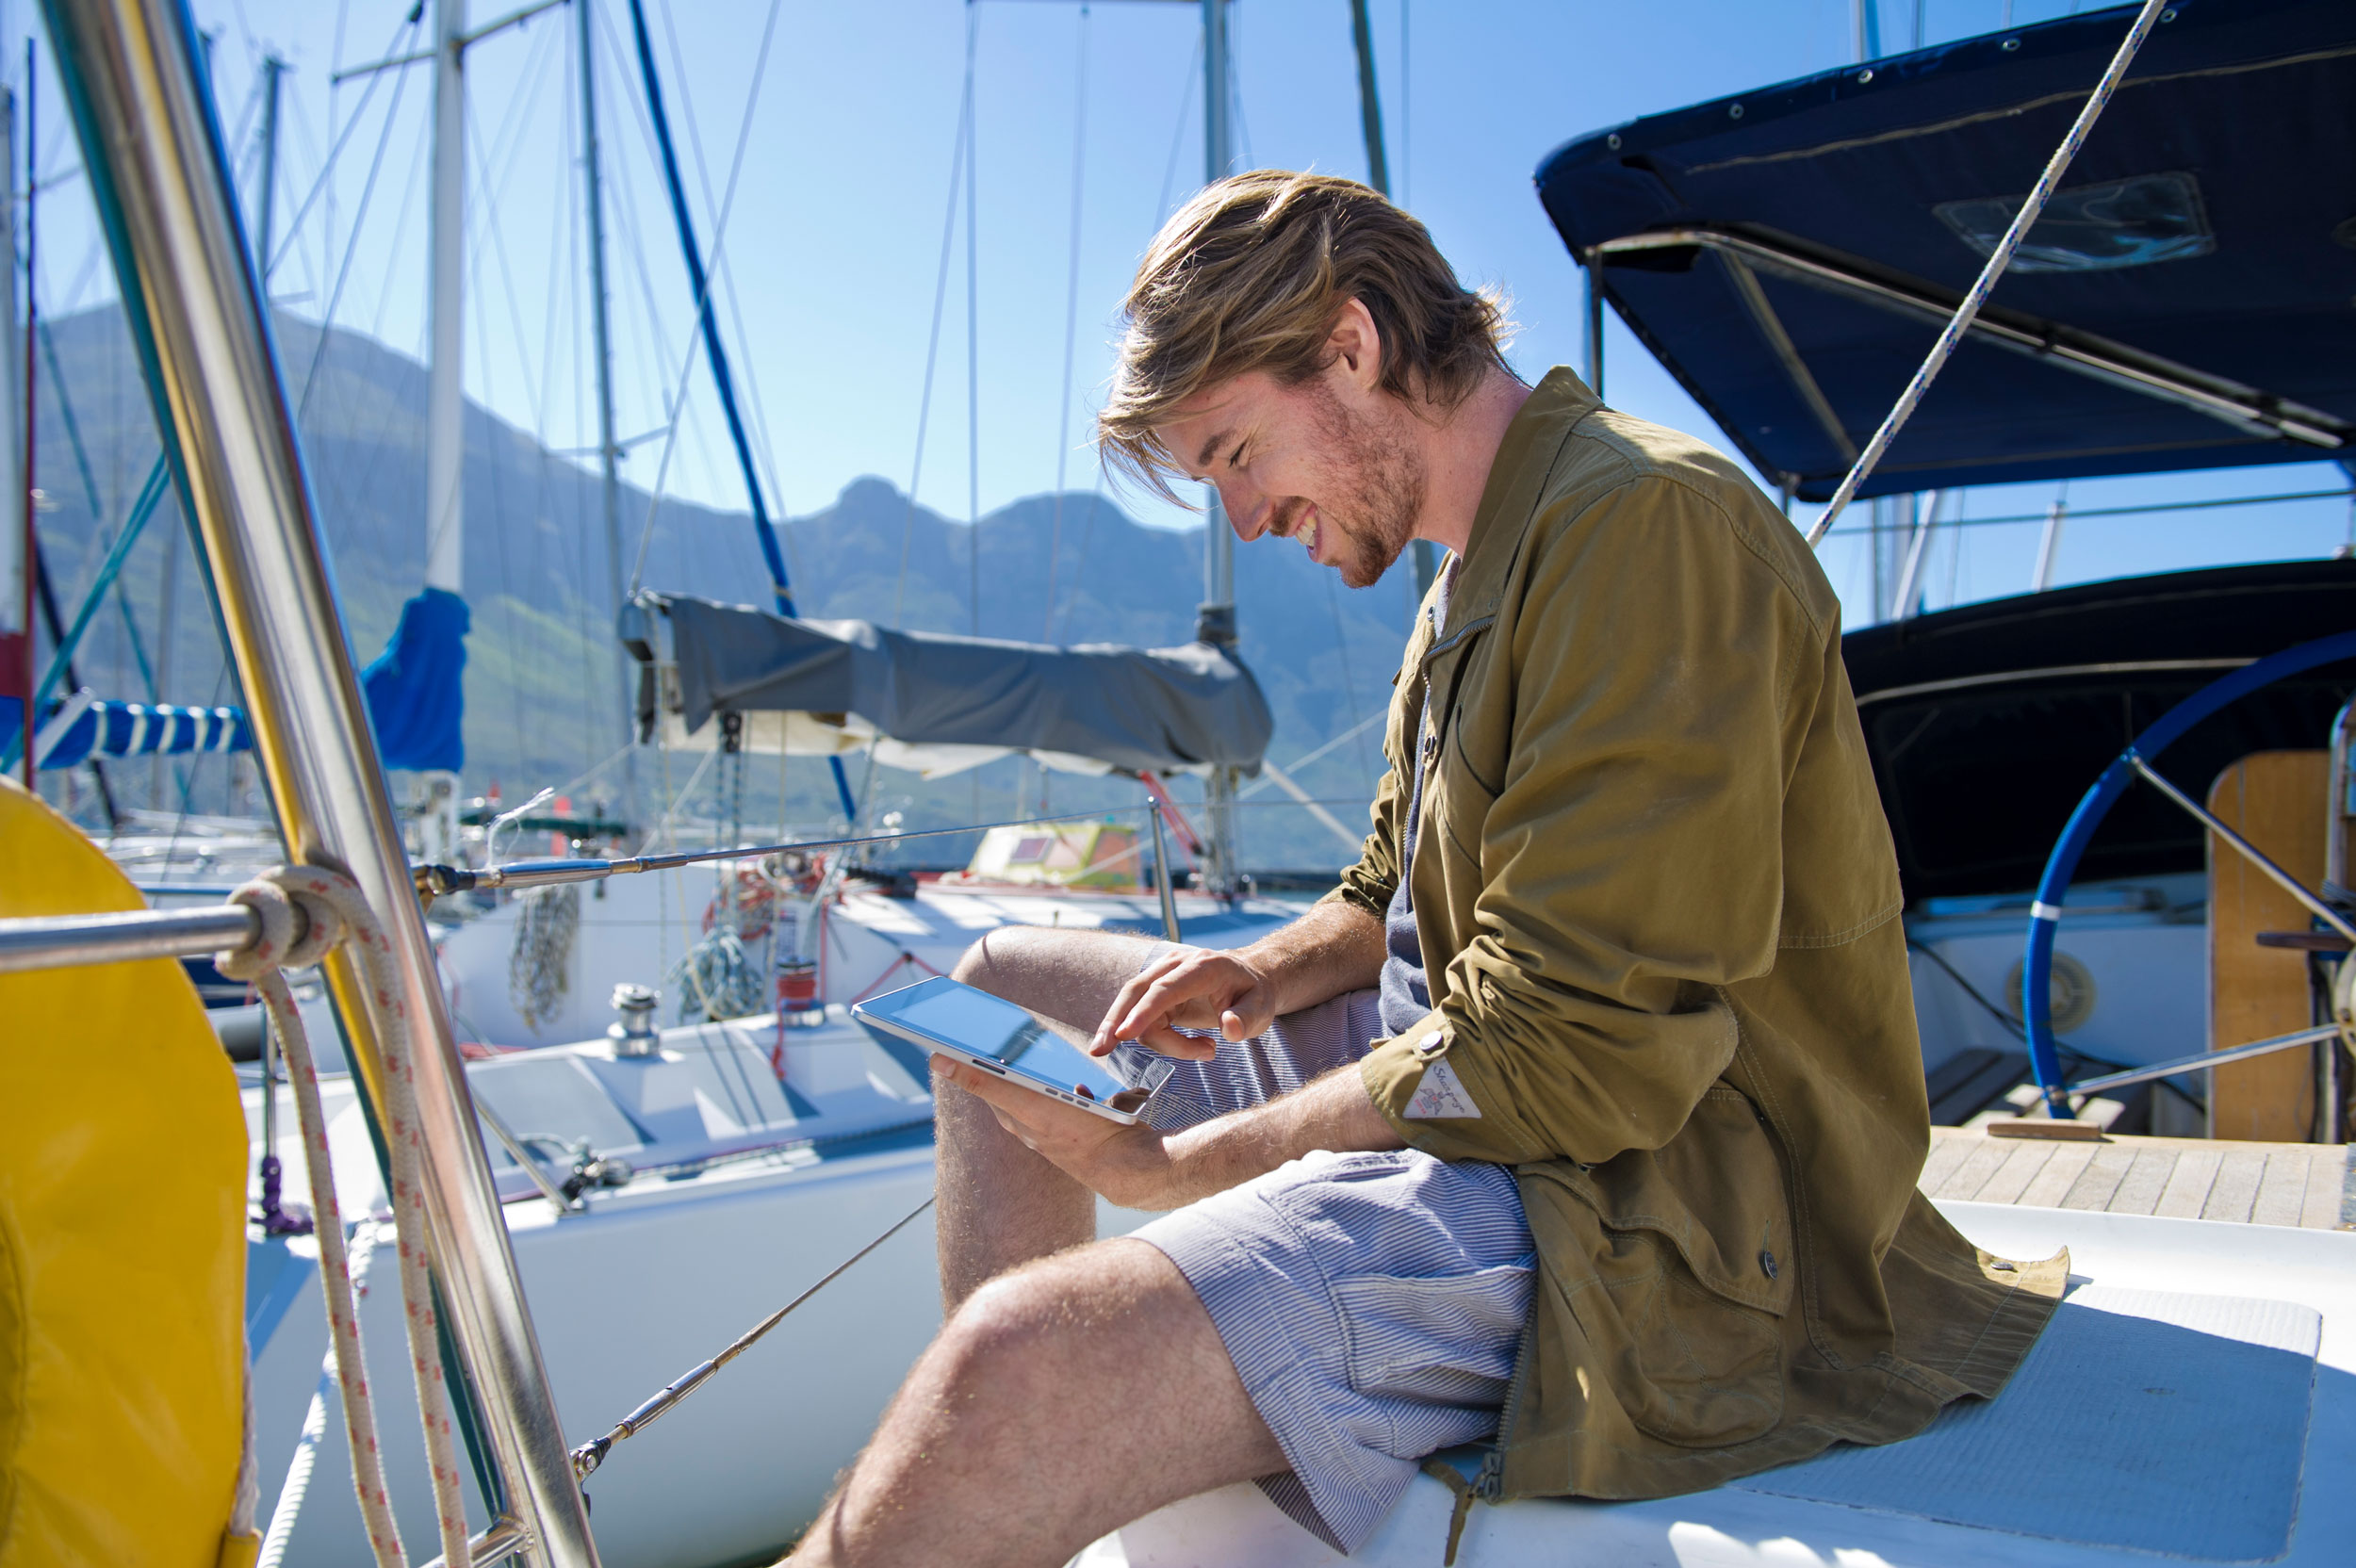 Guy on a boat is reading something on a iPad unretouched